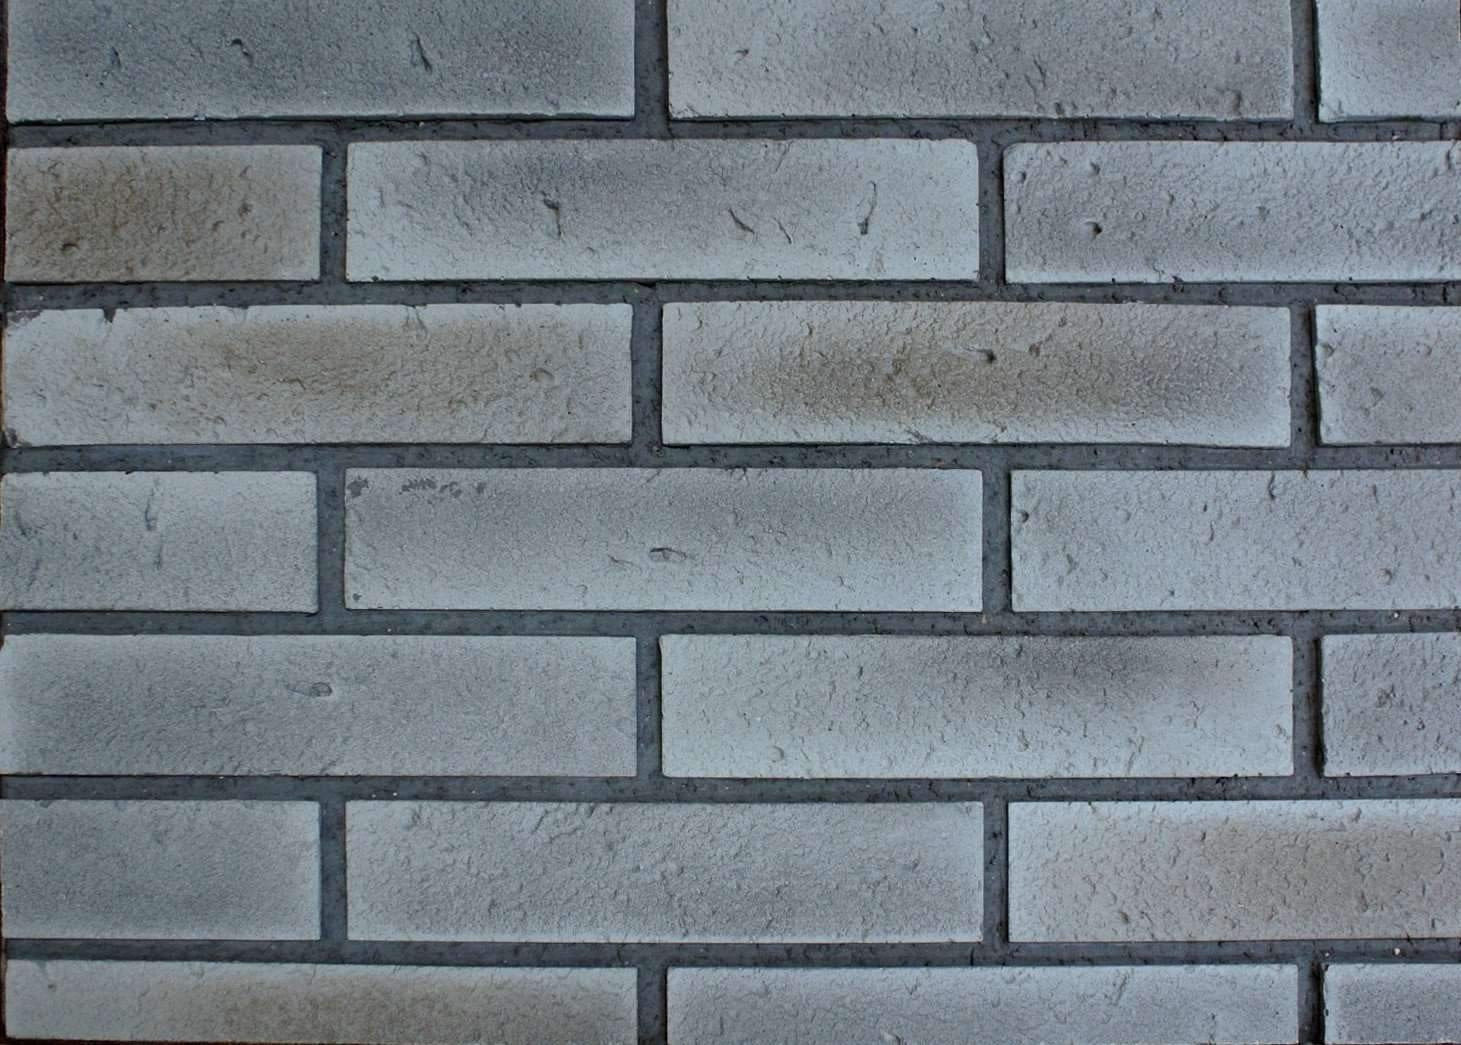 Old Mill - Modern Brick cheap stone veneer clearance - Discount Stones wholesale stone veneer, cheap brick veneer, cultured stone for sale